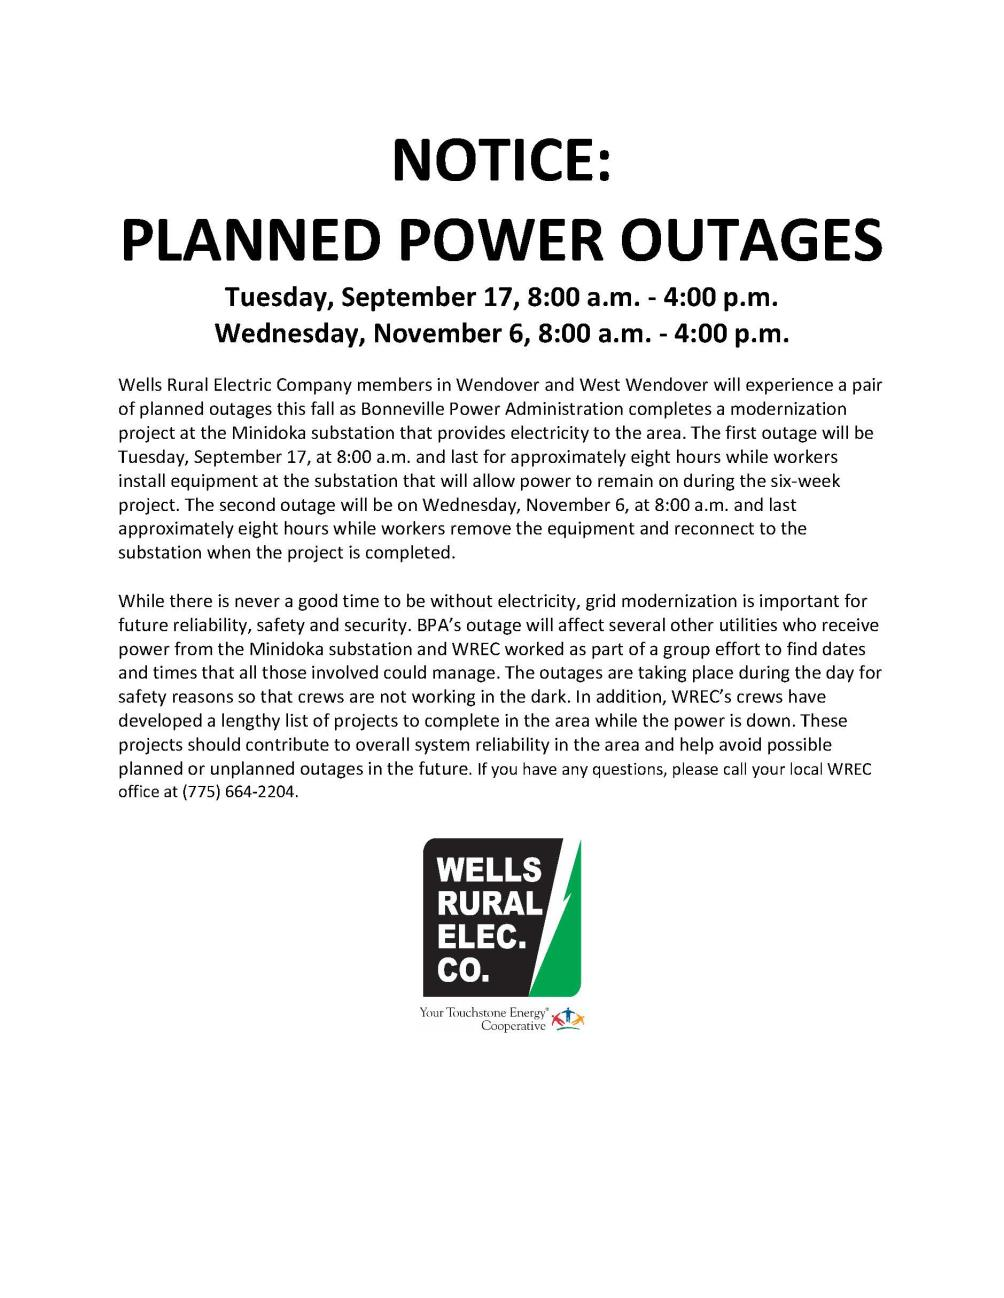 WW power outage notice update 10-30-2019